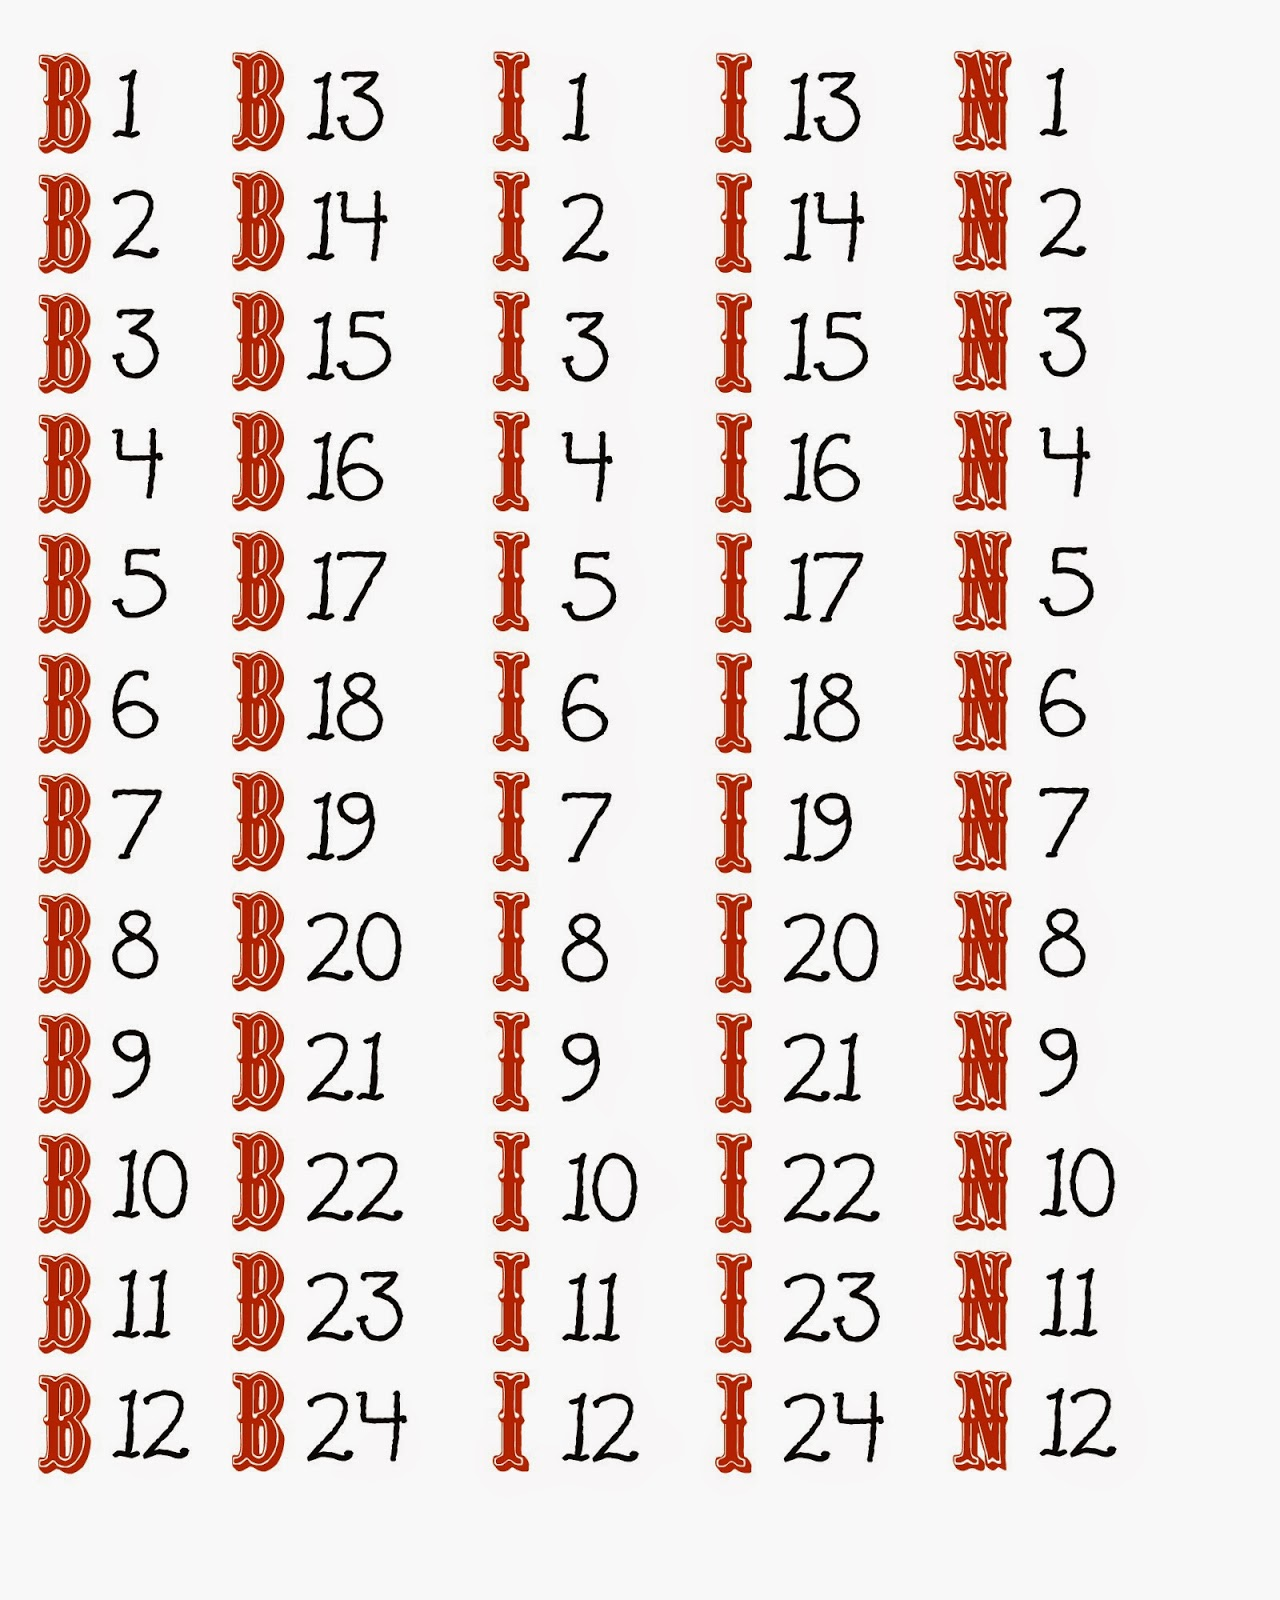 graphic relating to Free Printable Bingo Cards With Numbers titled Free of charge Printable 1 75 Selection Bingo Card Generator for Your